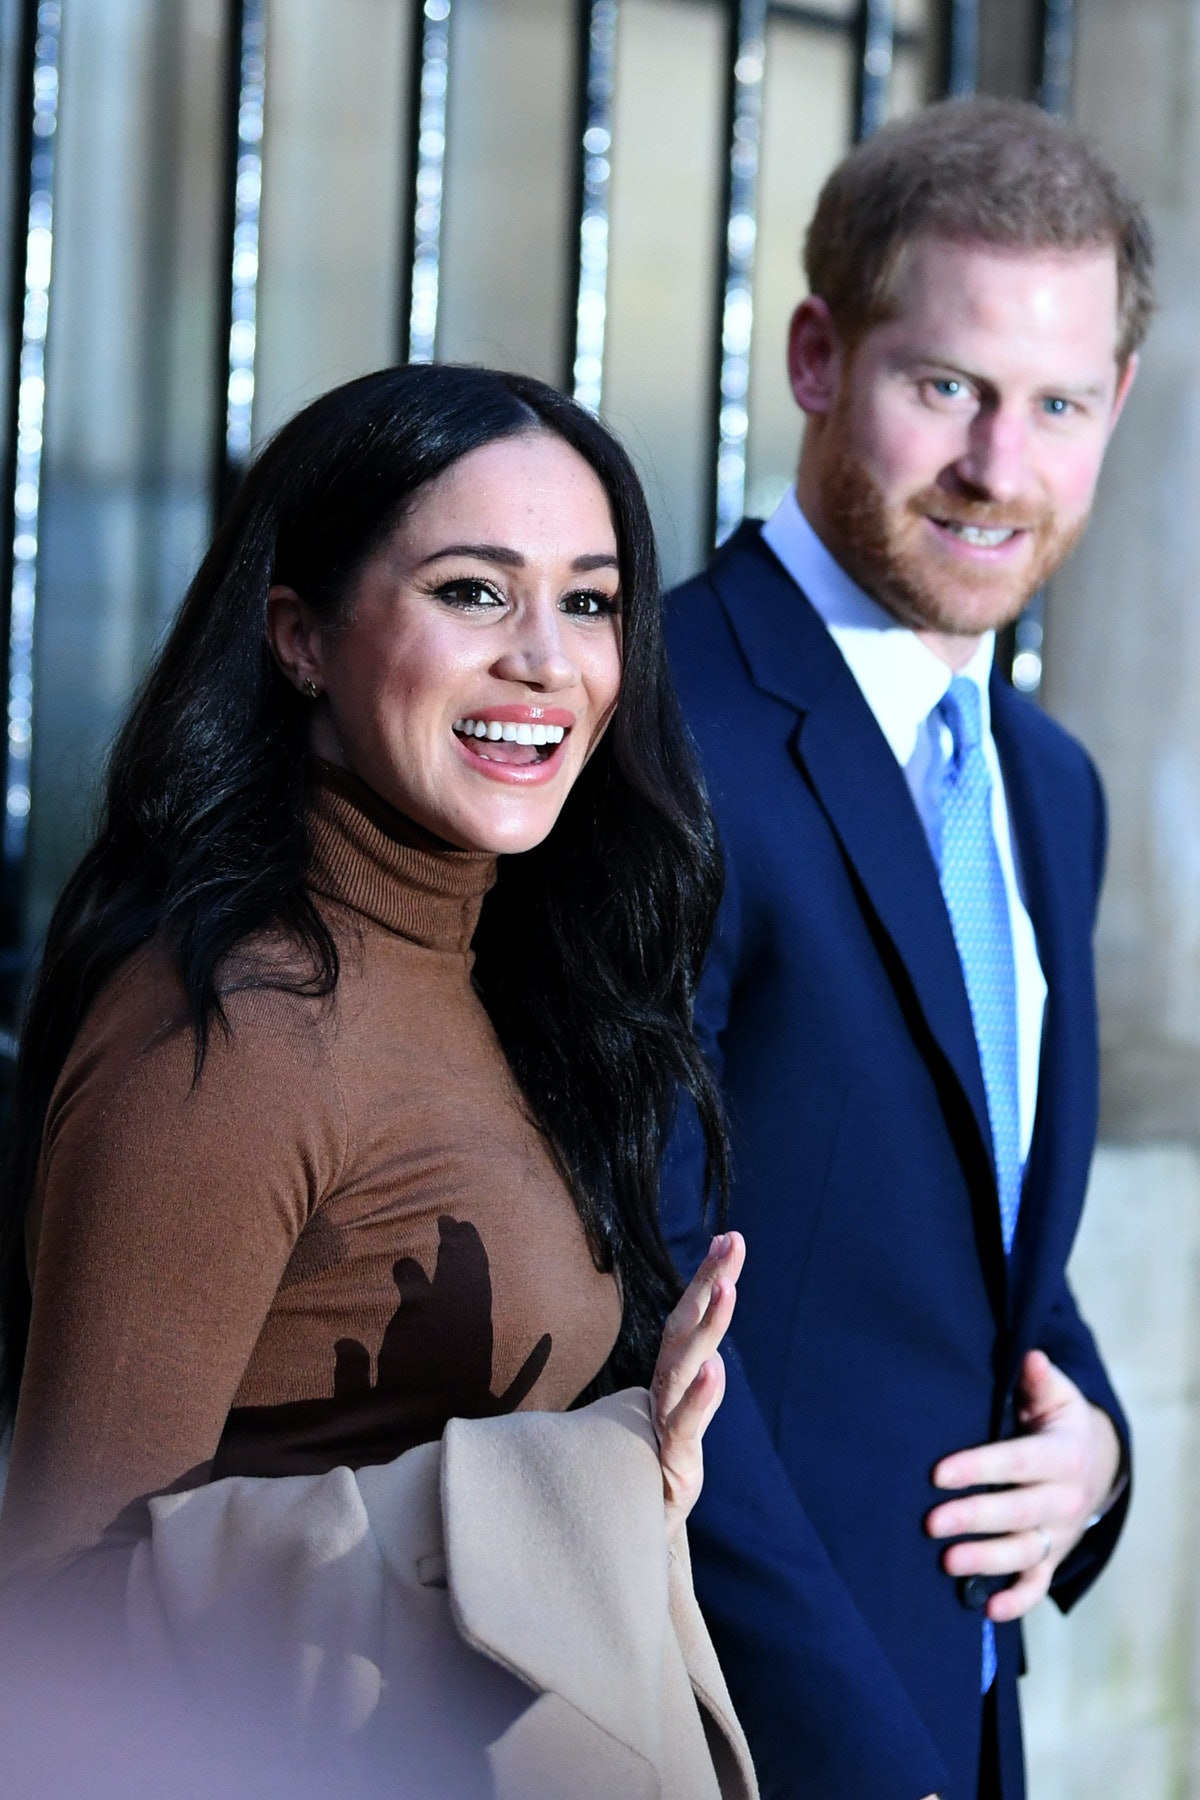 Meghan Markle and Prince Harry wave to fans.